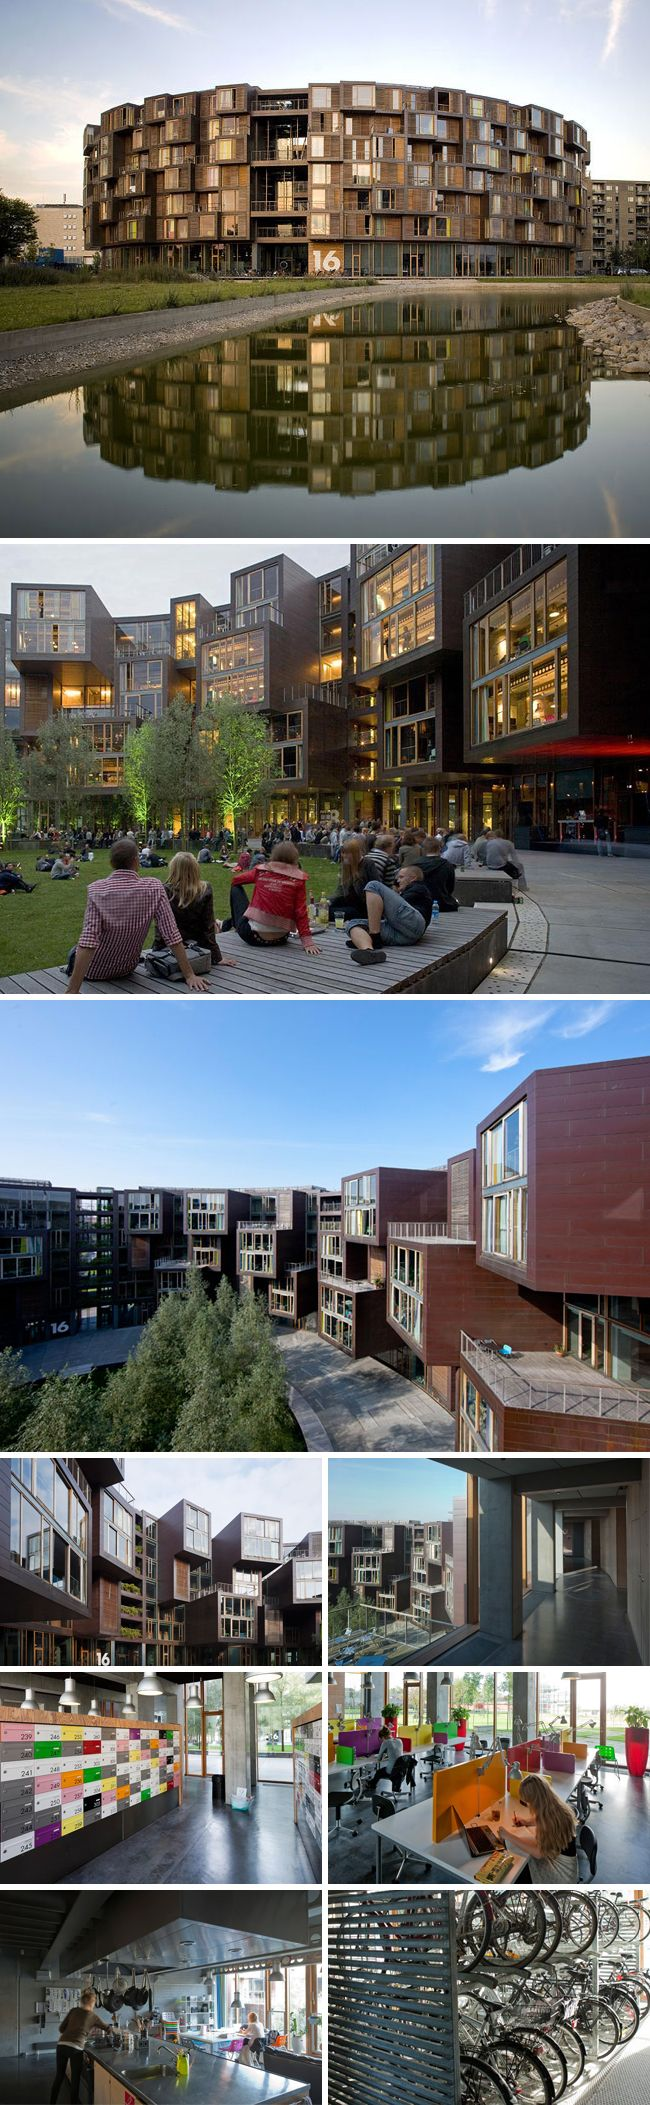 Coolest dorm ever! Designed by Lundgaard & Tranberg, Copenhagen's Tietgen Student Hall (Tietgenkollegiet) is a 288,000-square-foot, seven-story circular residential building outfitted with everything a college student would want, including a bike workshop, music rehearsal rooms and gourmet kitchens.